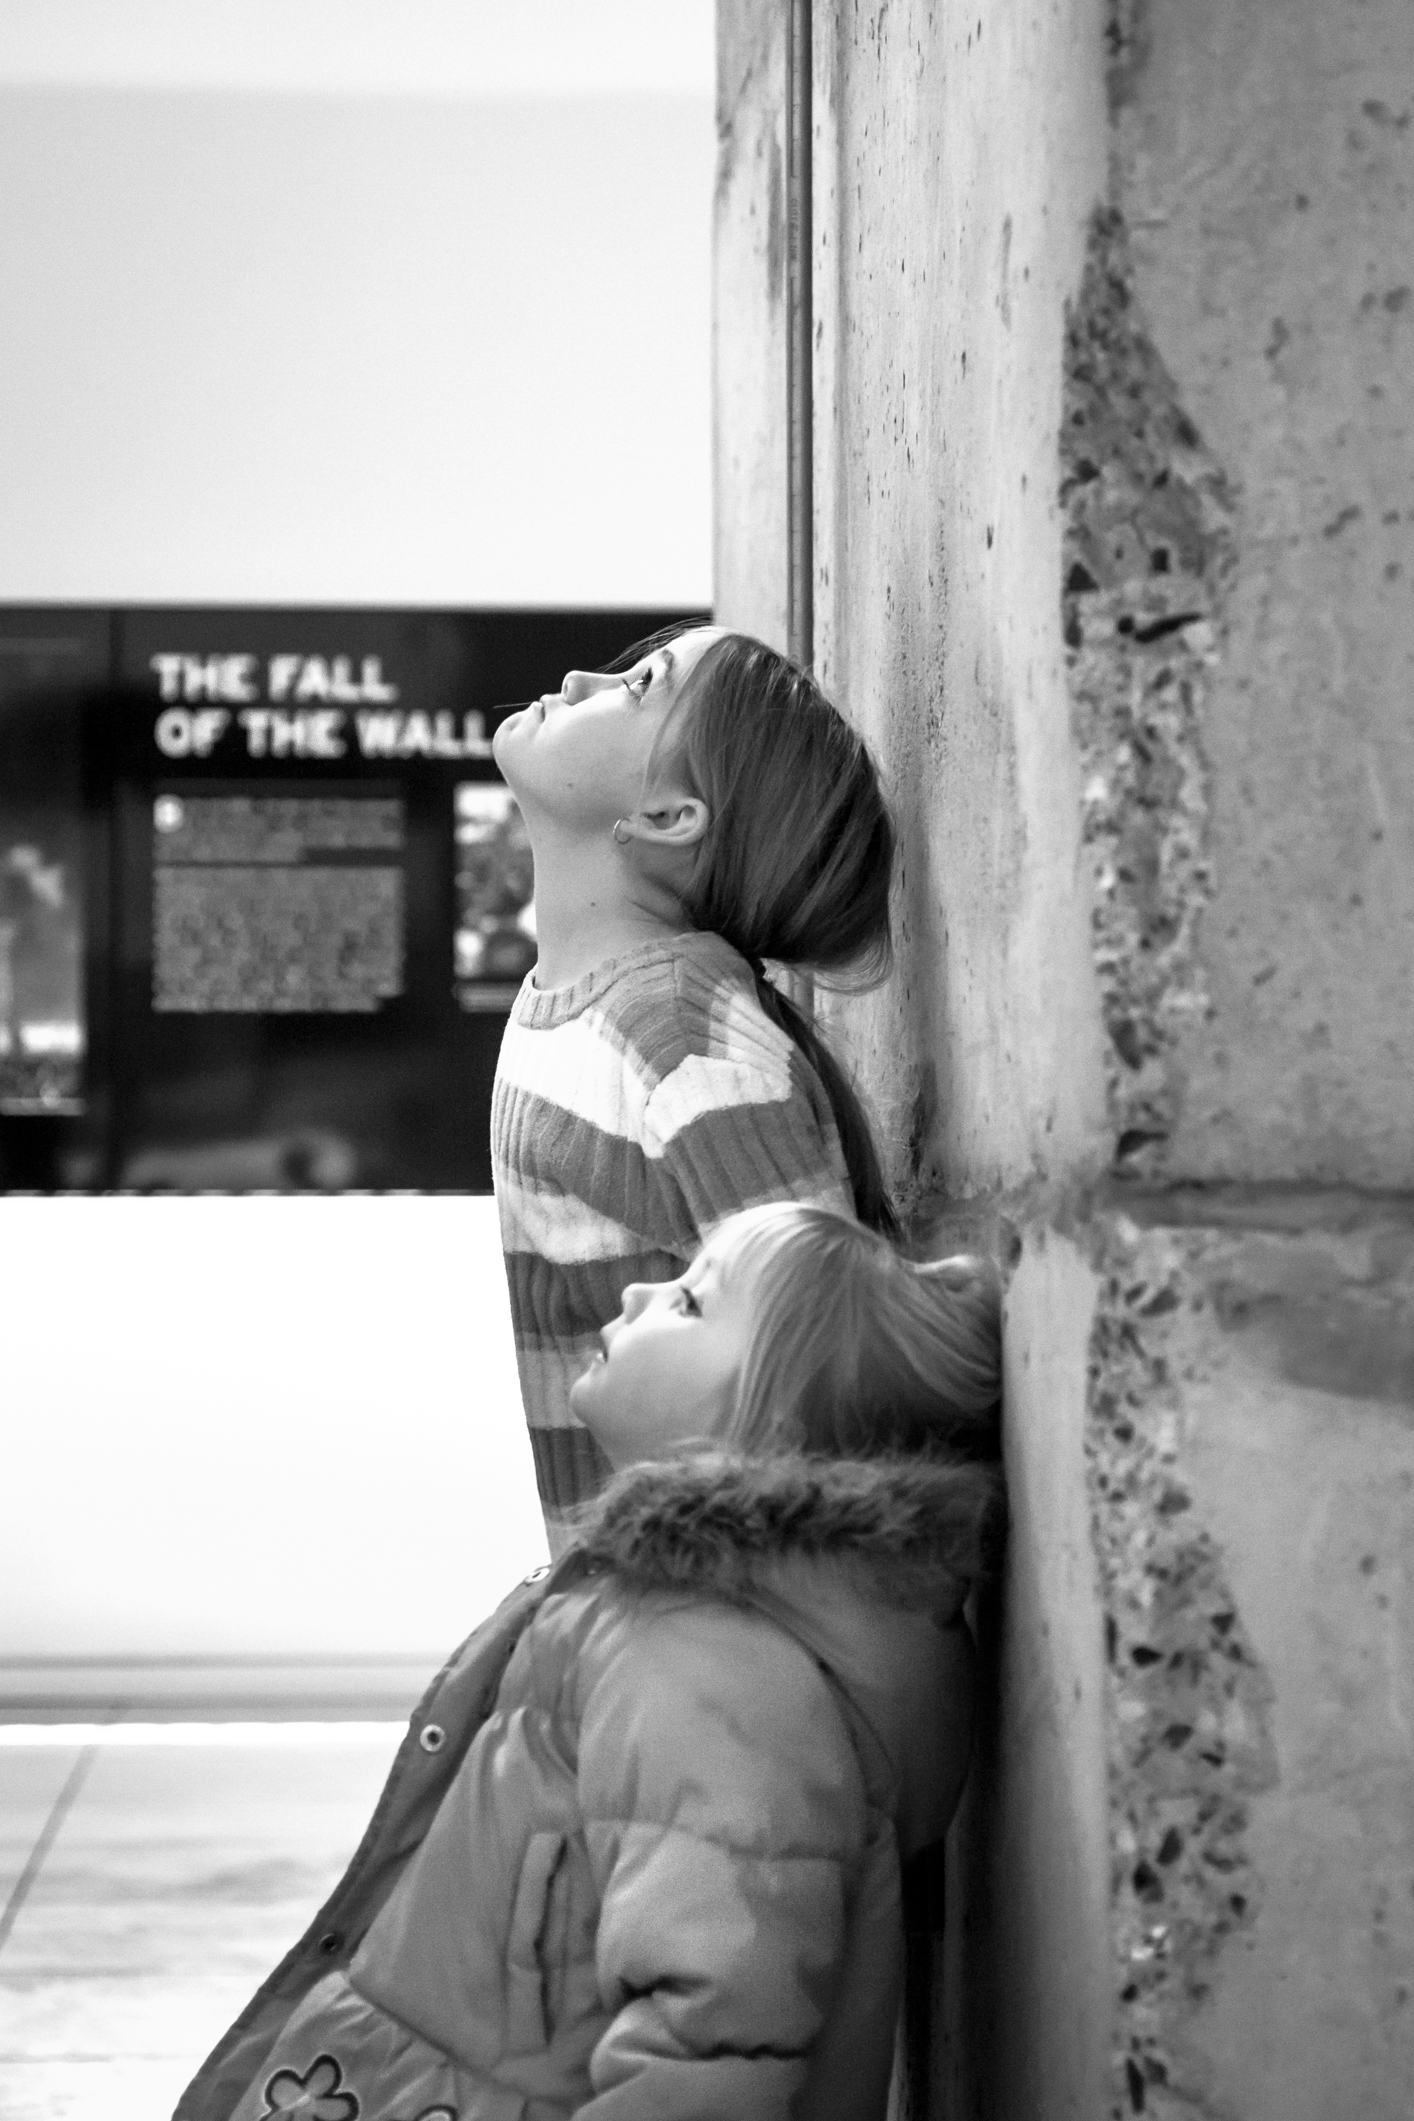 Two girls stand next to a wall possibly the Berlin Wall at the Newseum in Washington DC NotSoSAHM